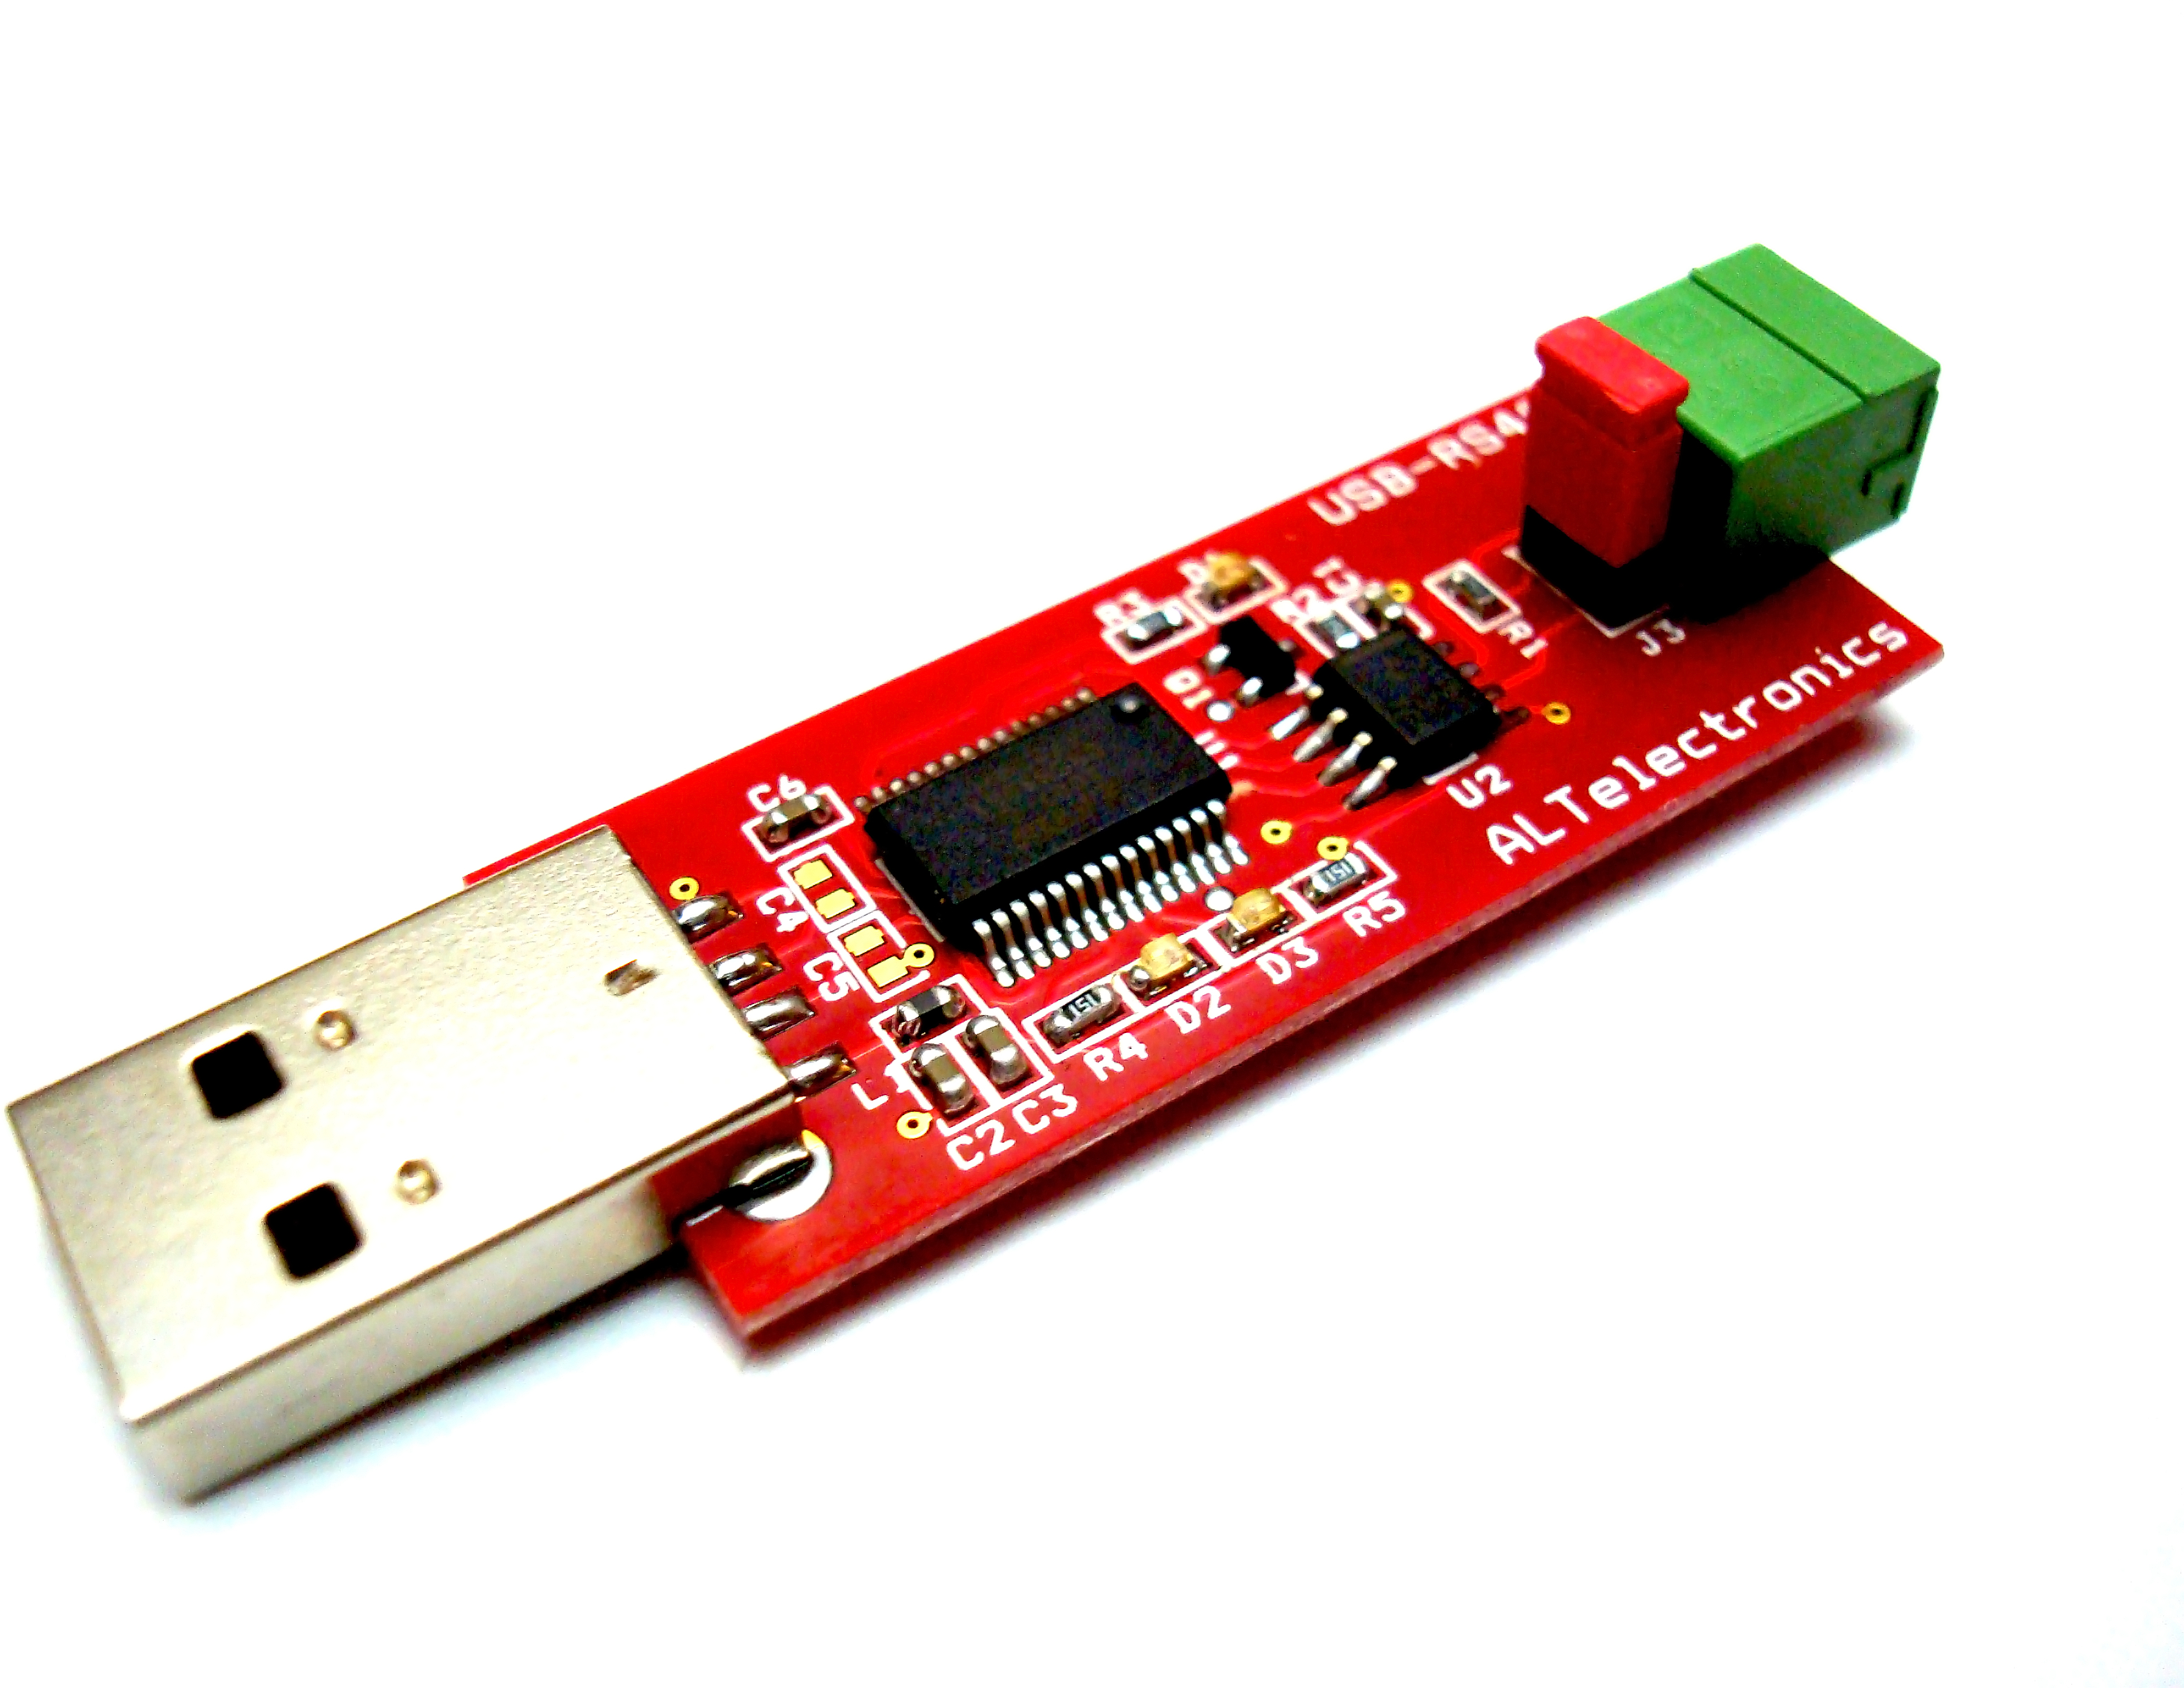 Usb To Rs485 Converter Wiring Diagram | Wiring Diagram - Rs485 To Usb Wiring Diagram